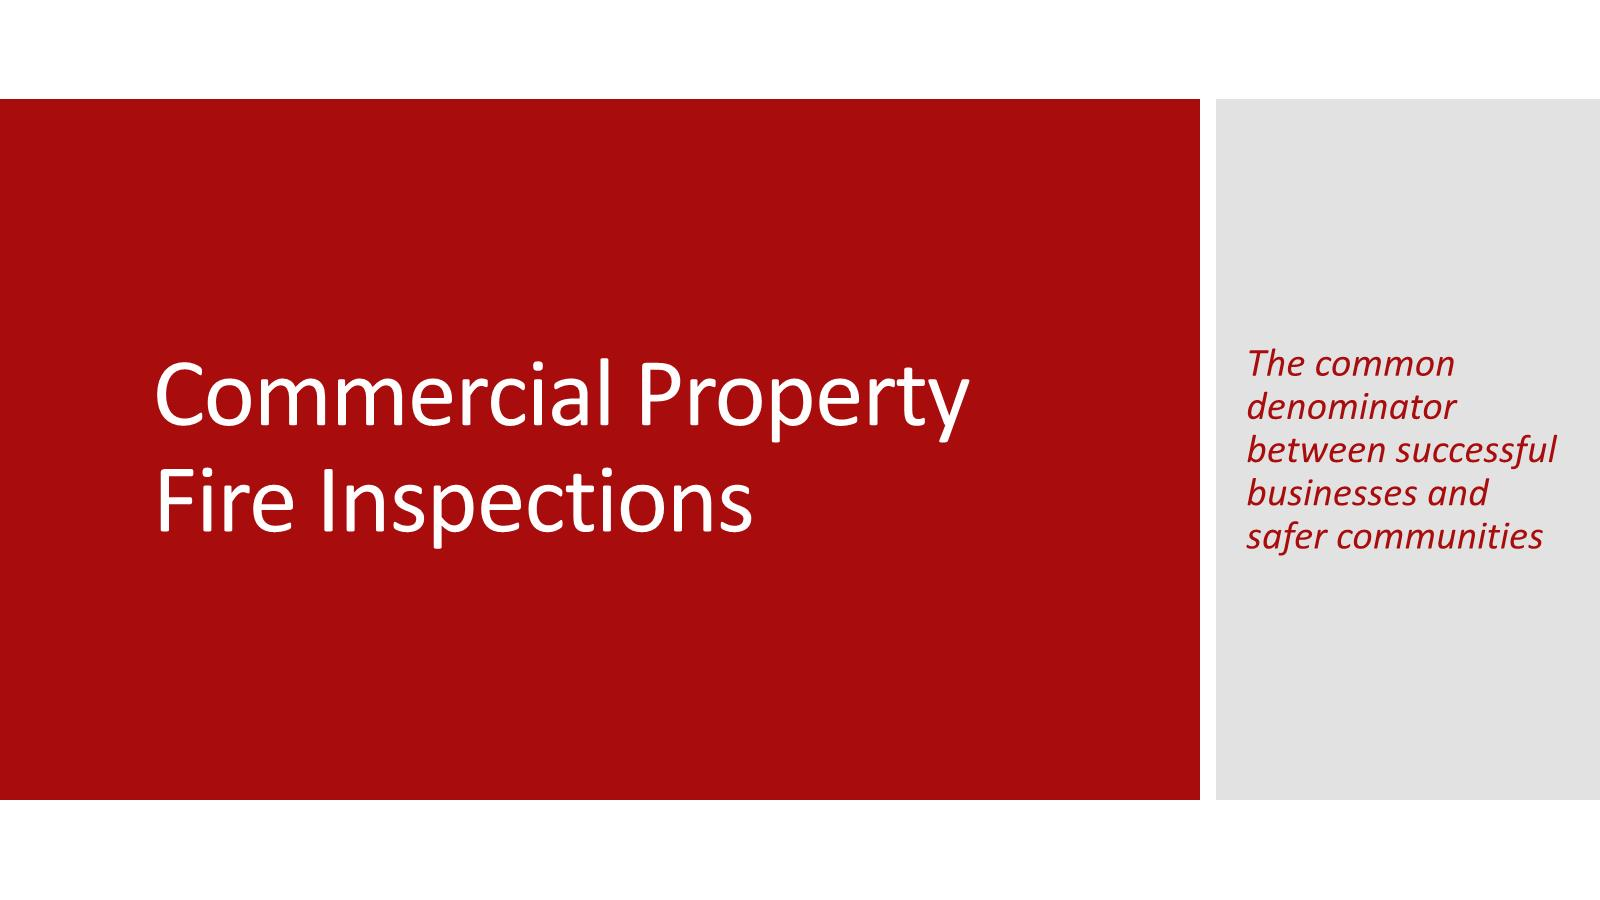 Commercial-Property-Fire-Inspections Page 001.jpg